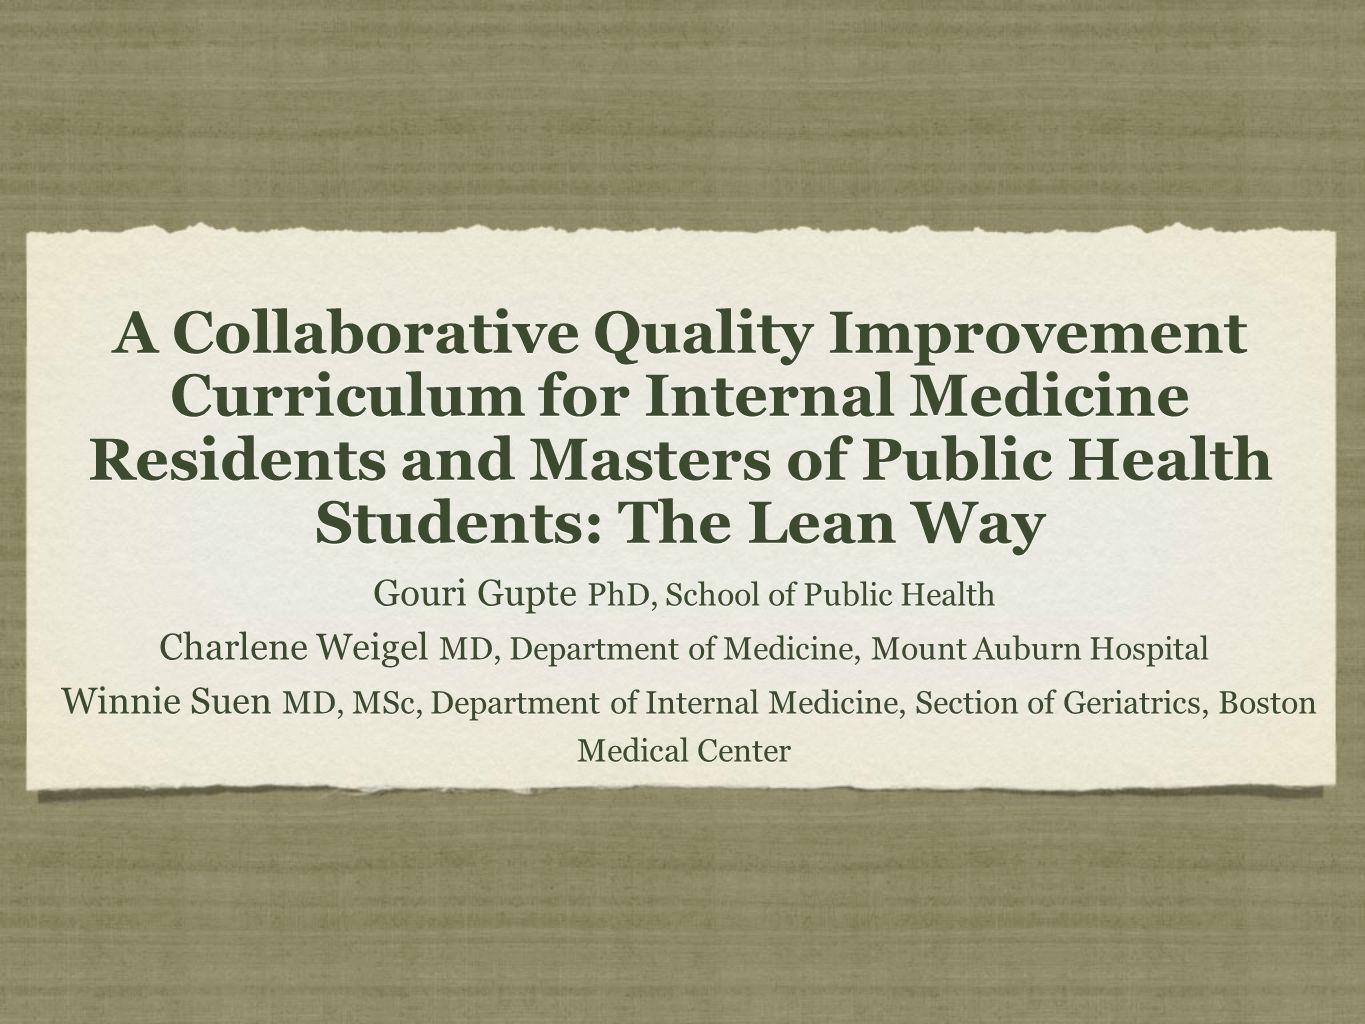 A Collaborative Quality Improvement Curriculum for Internal Medicine Residents and Masters of Public Health Students: The Lean Way